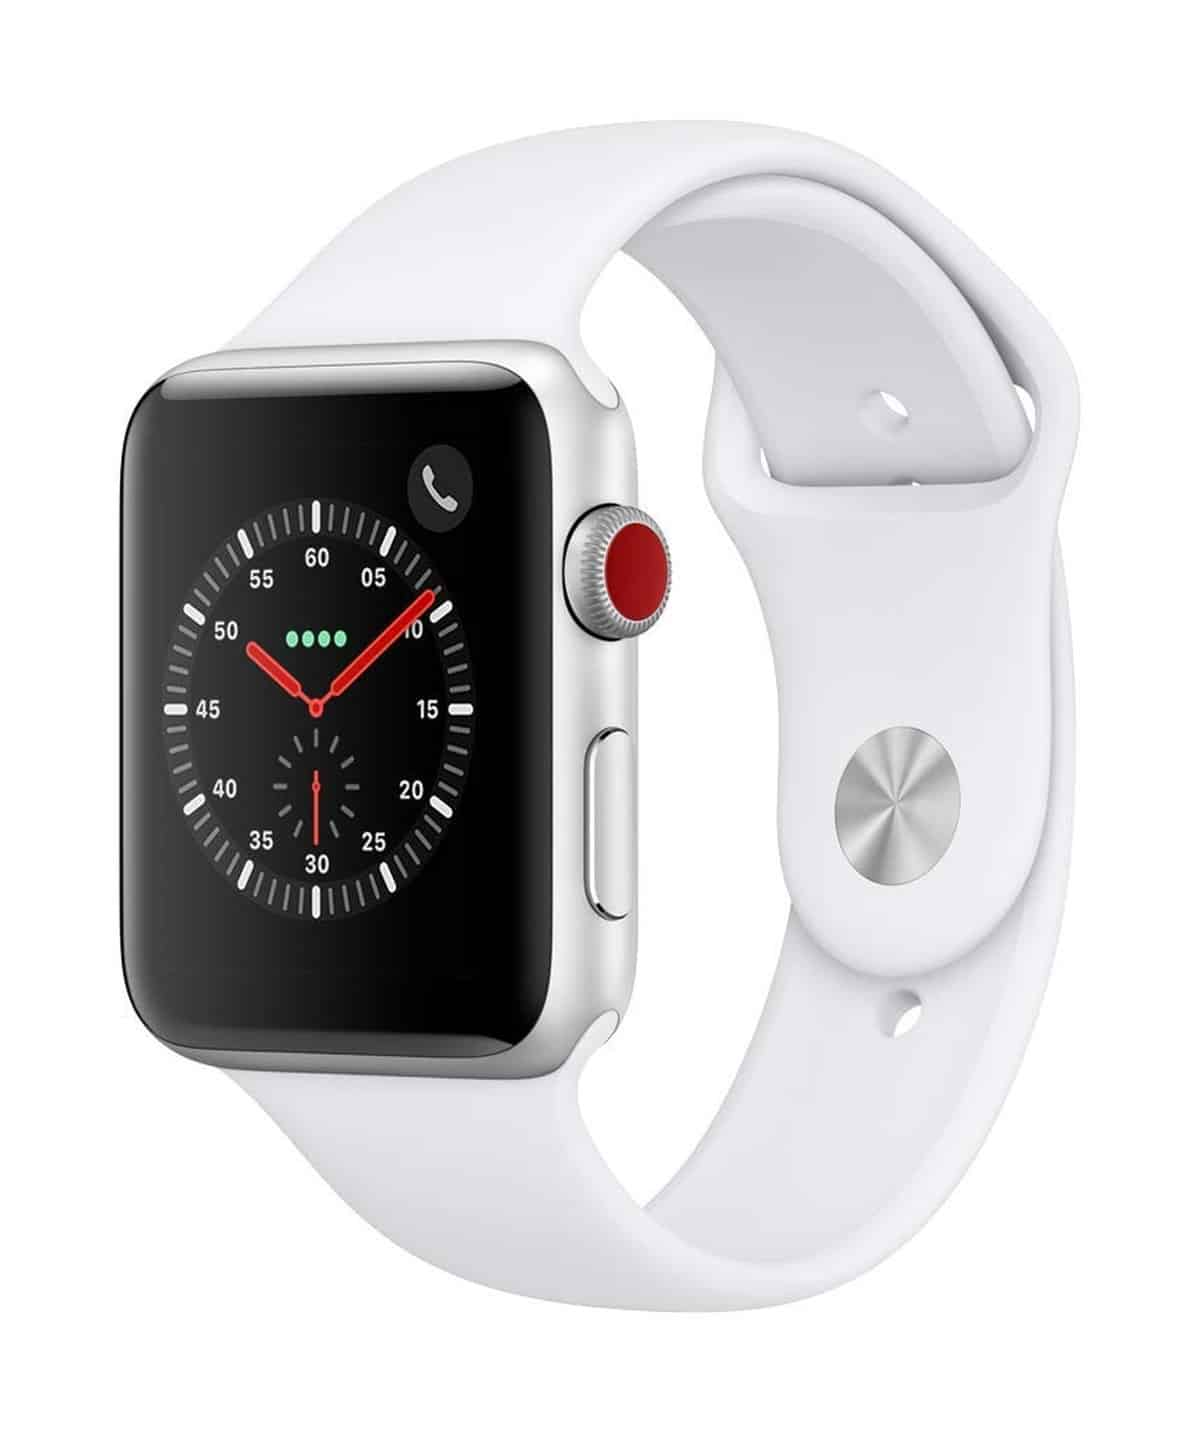 Apple Watch Series 3 |Unique Wearable Technology Gadgets